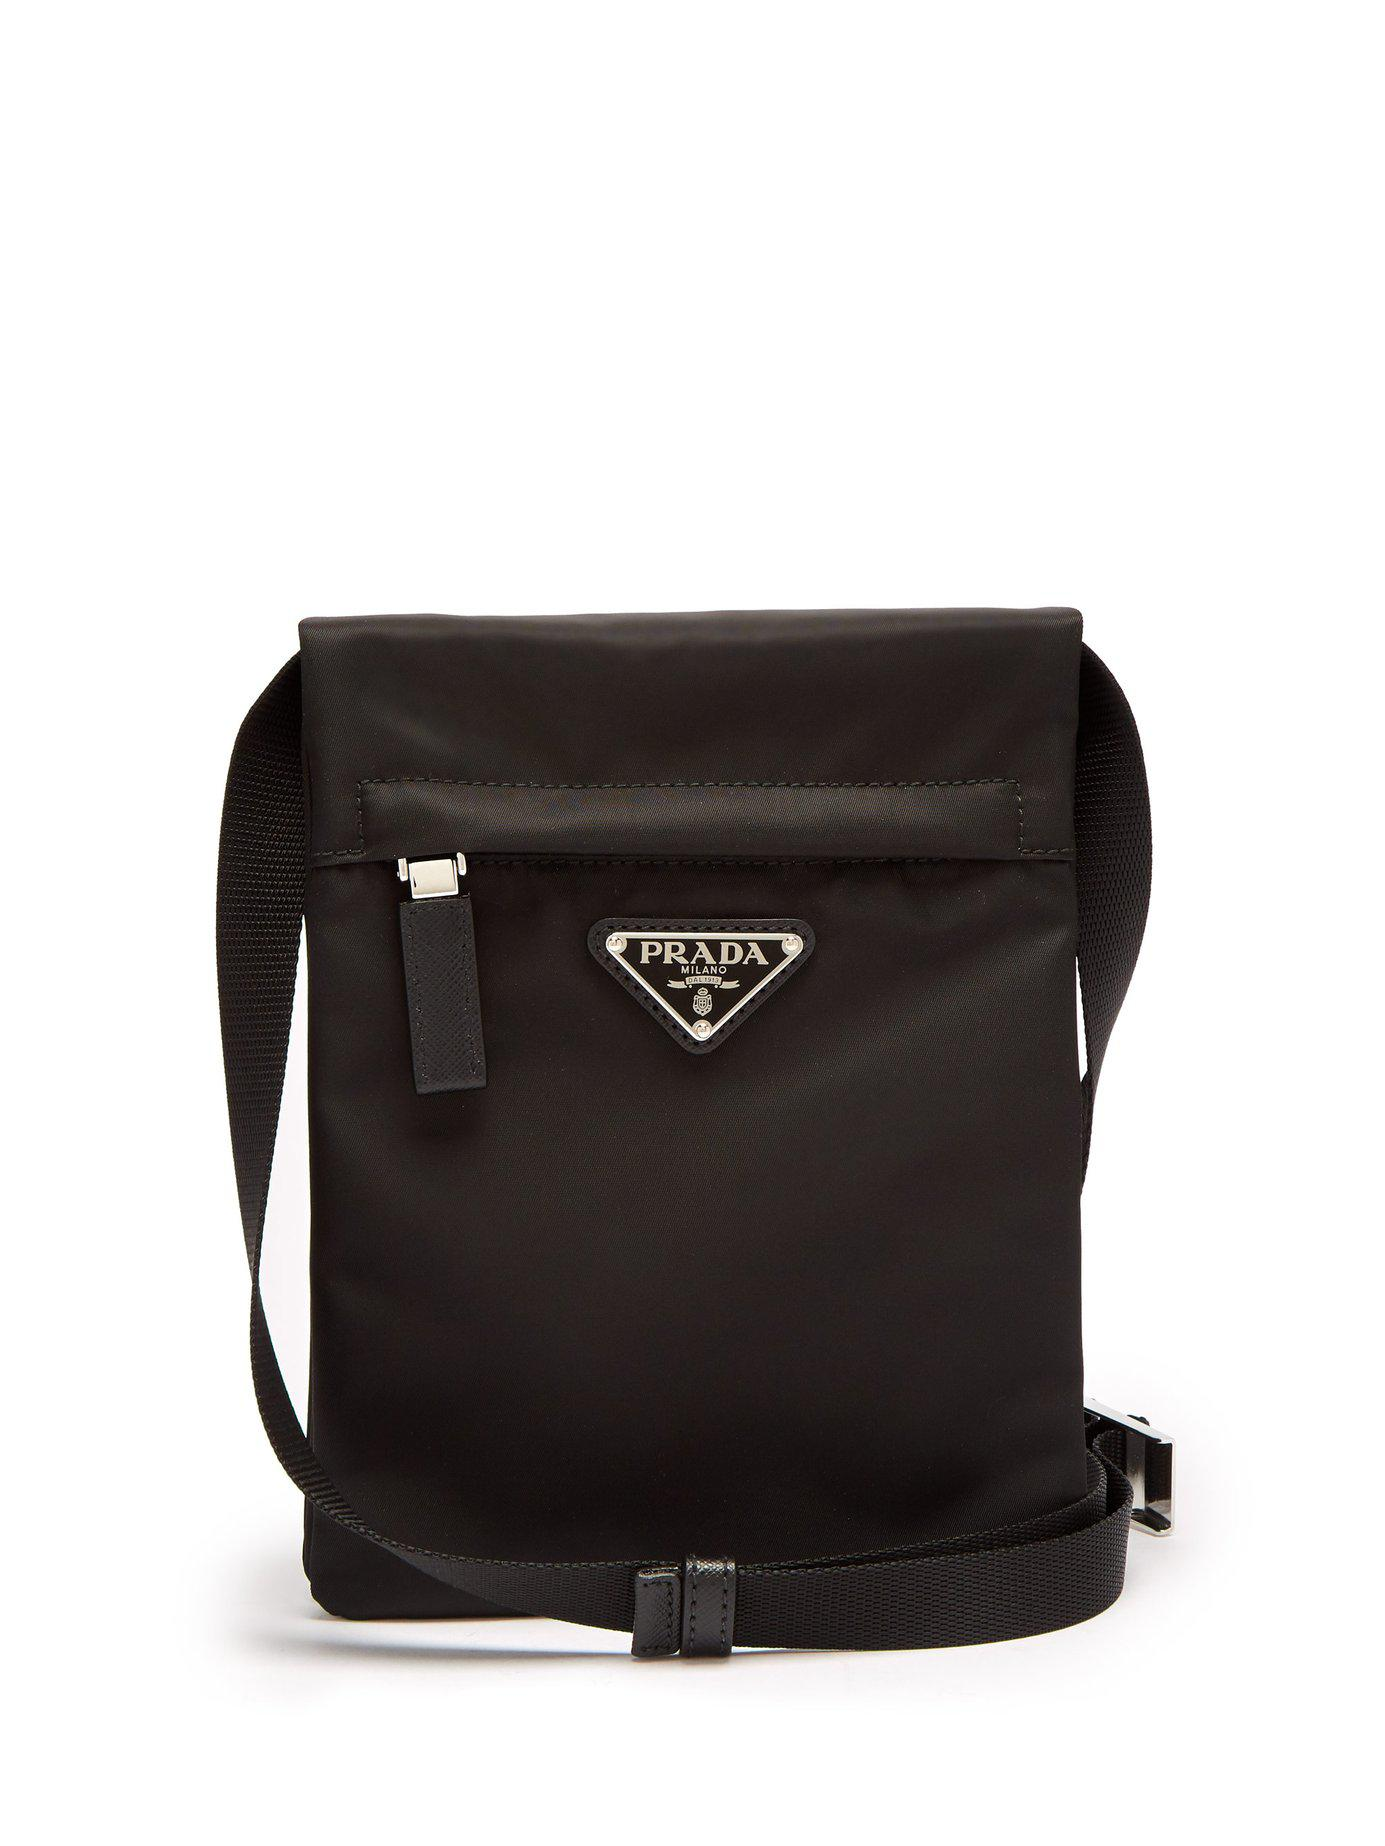 ce4fce1ccf13c1 Prada - Black Nylon Cross Body Bag for Men - Lyst. View fullscreen